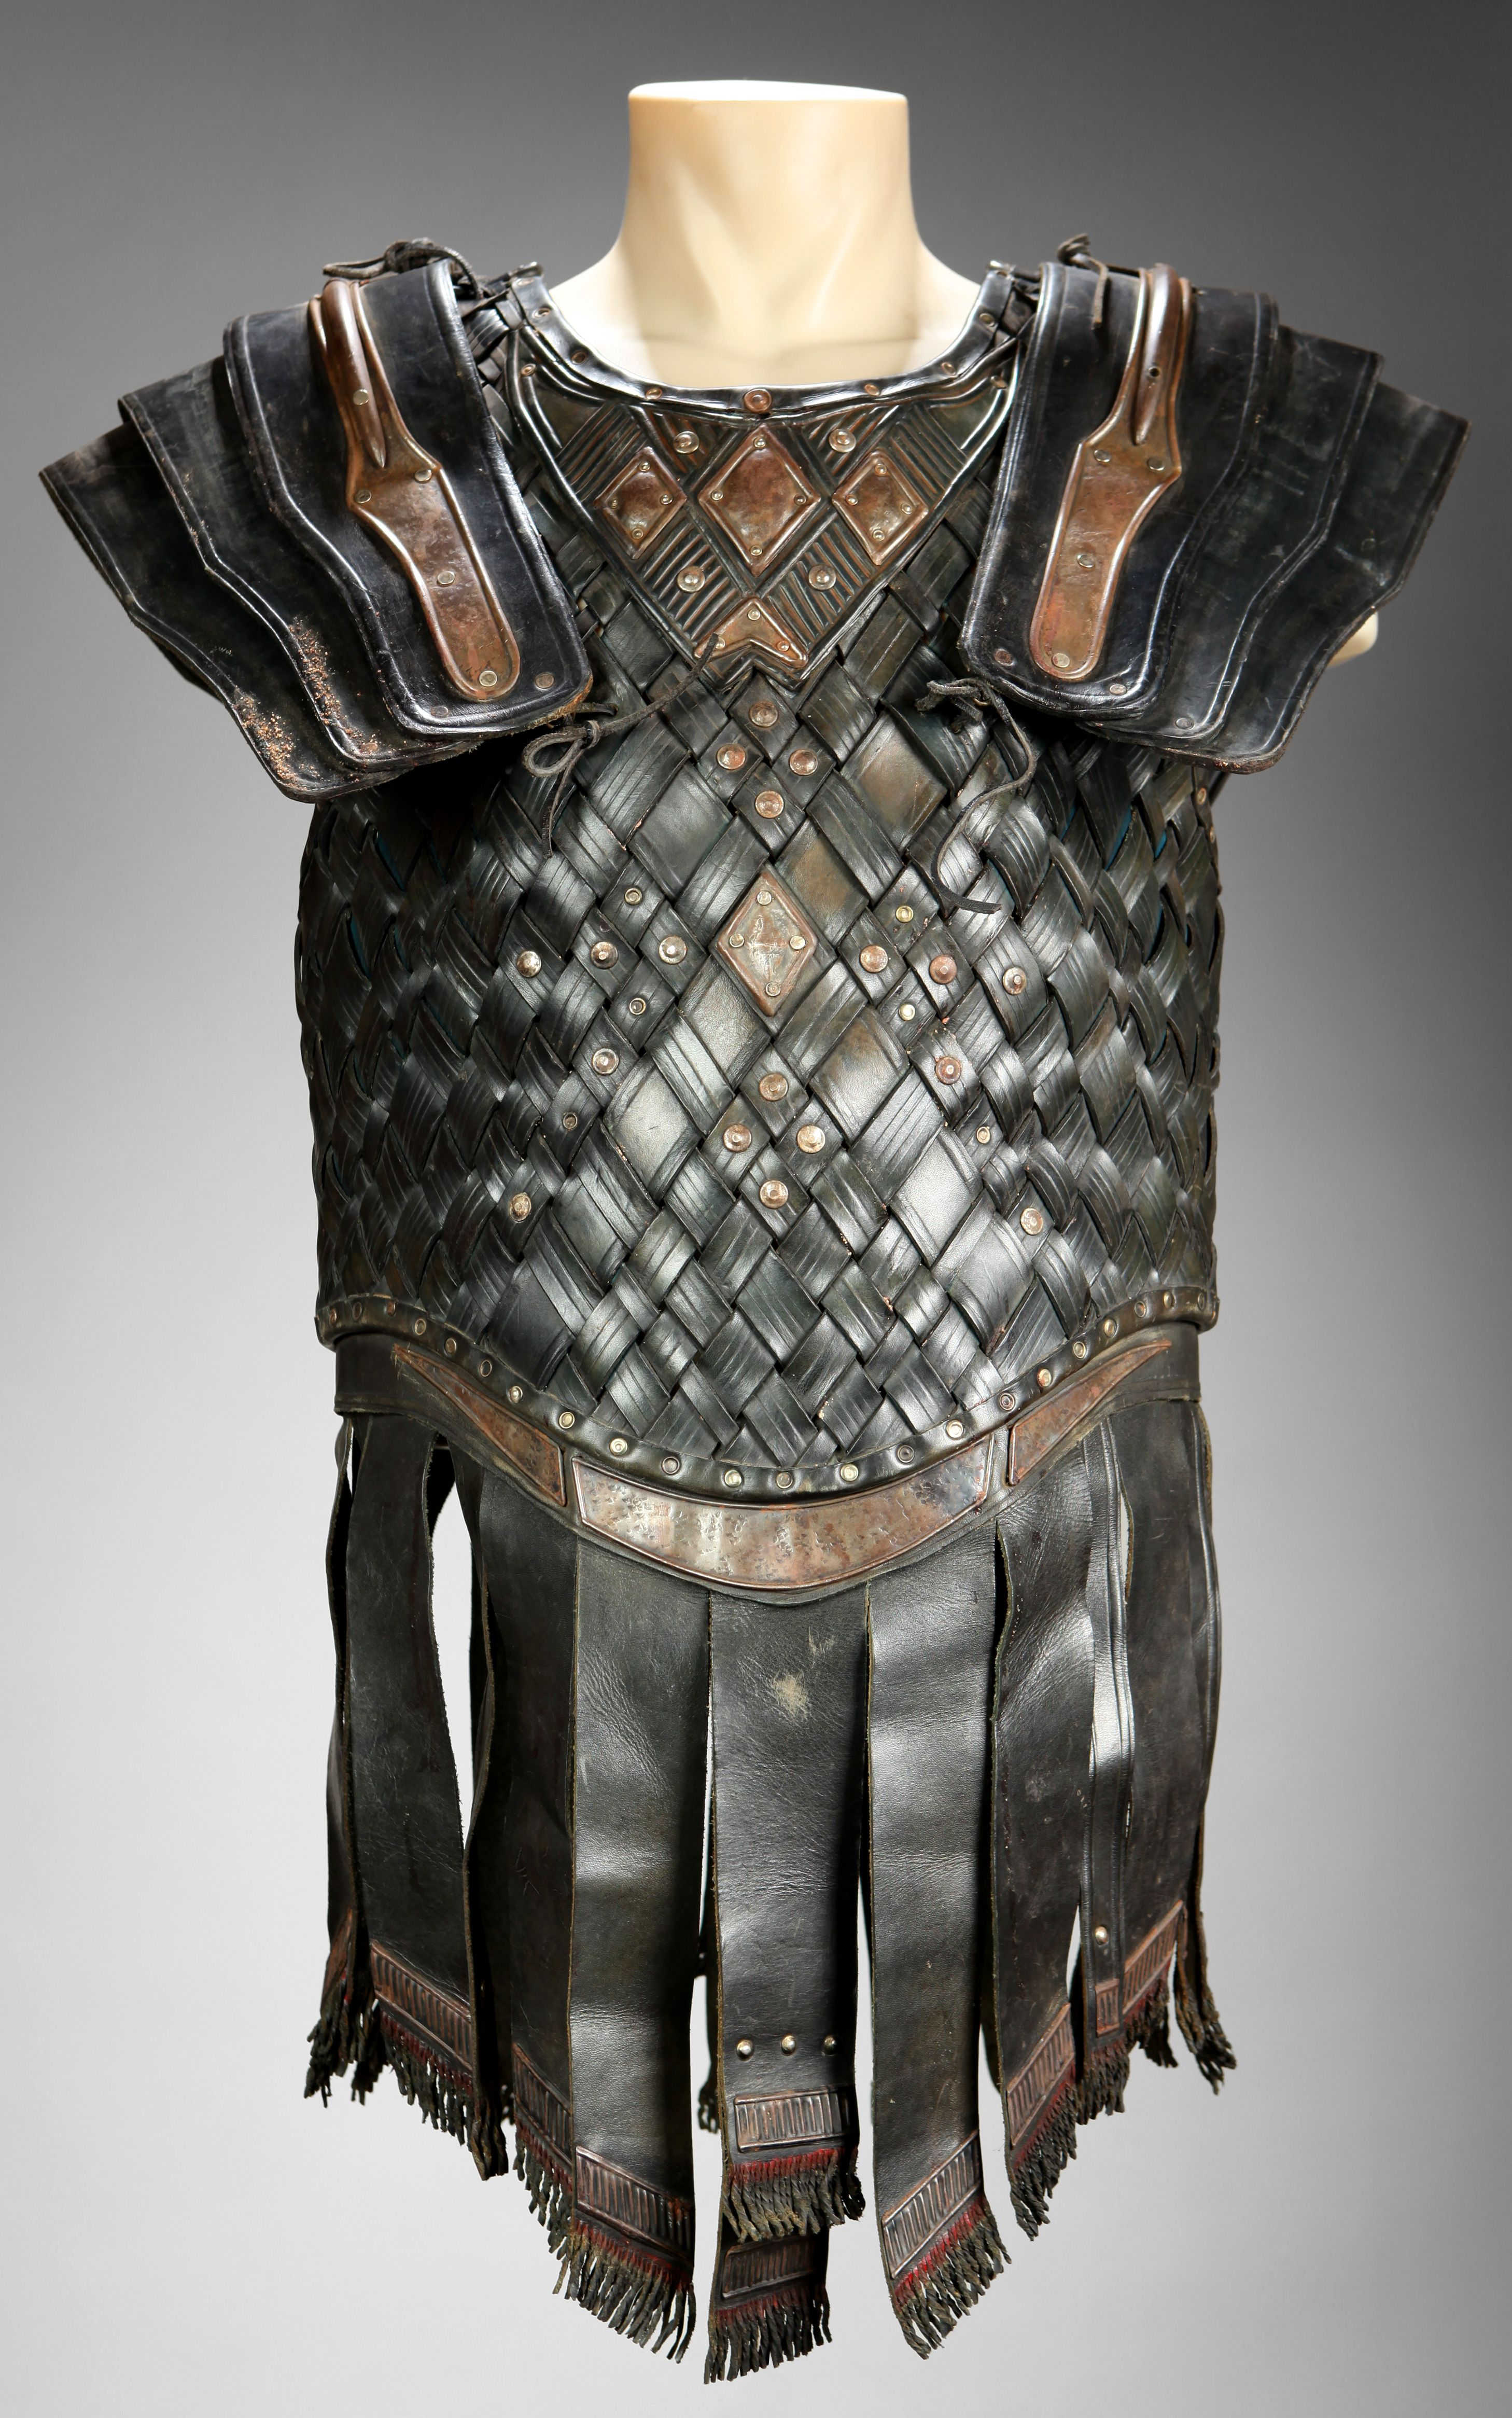 Pin by Lisa Mirella on Art Reference | Ancient armor